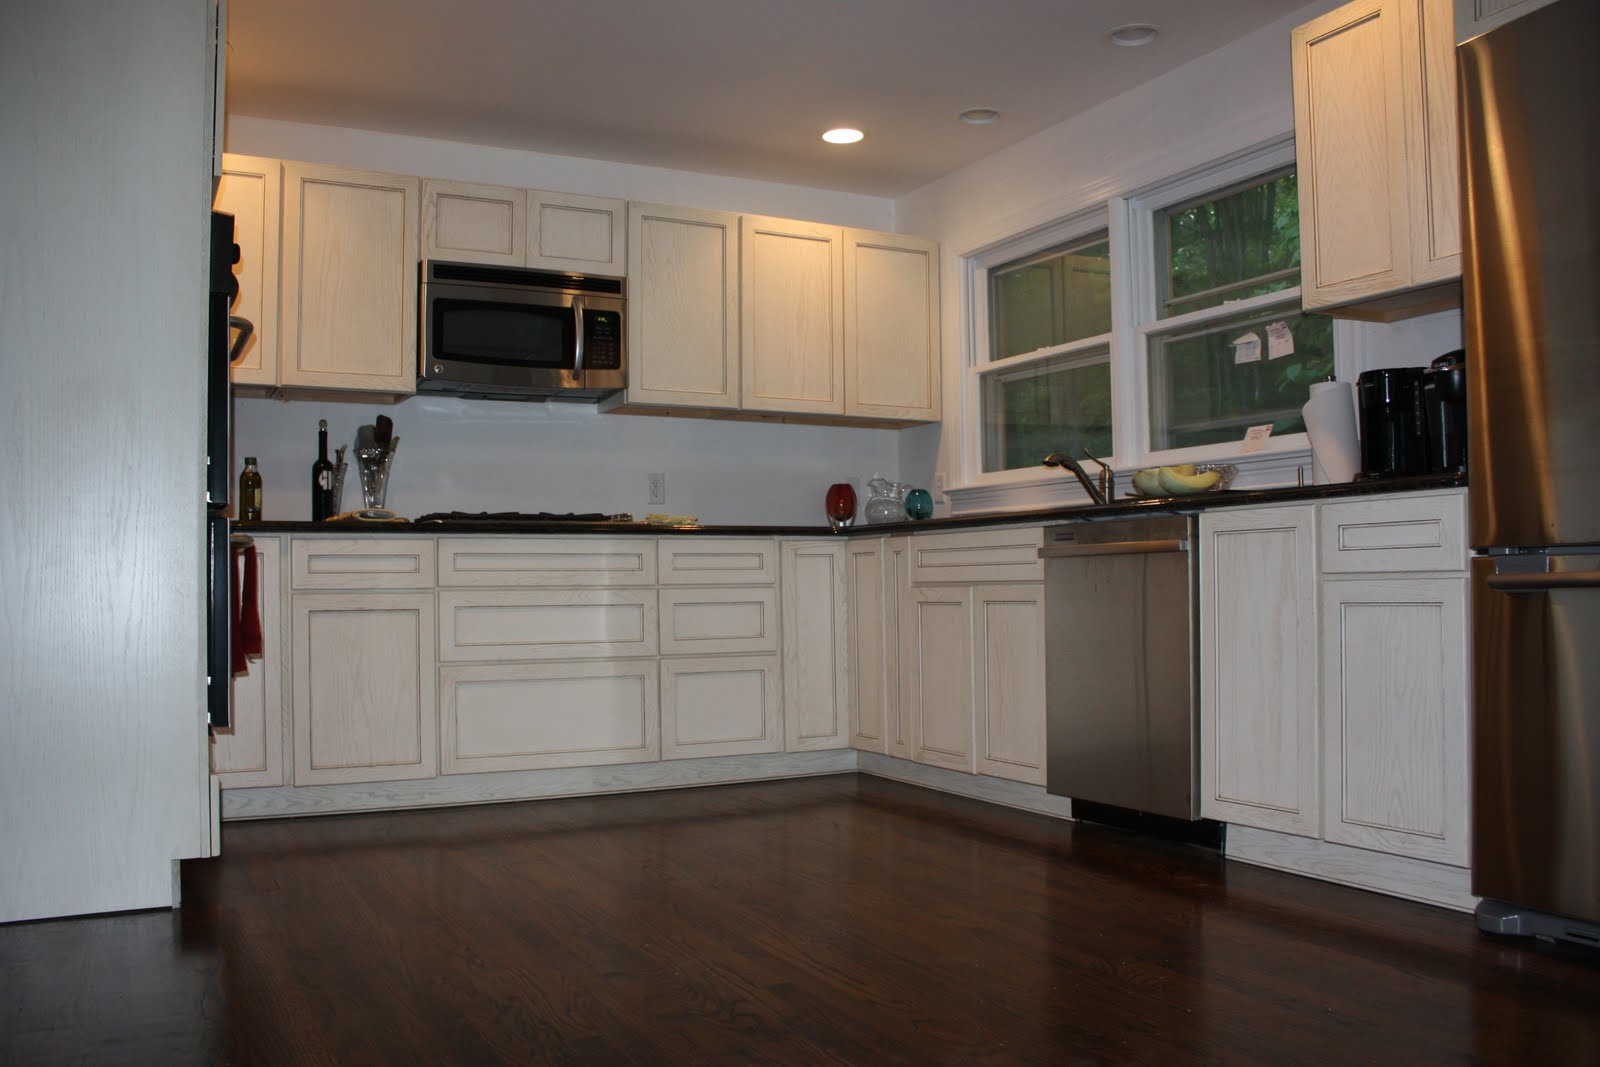 Cabinet Bottom Trim Kitchen Cabinet Trim Molding Image Is Loading Under Cabinet